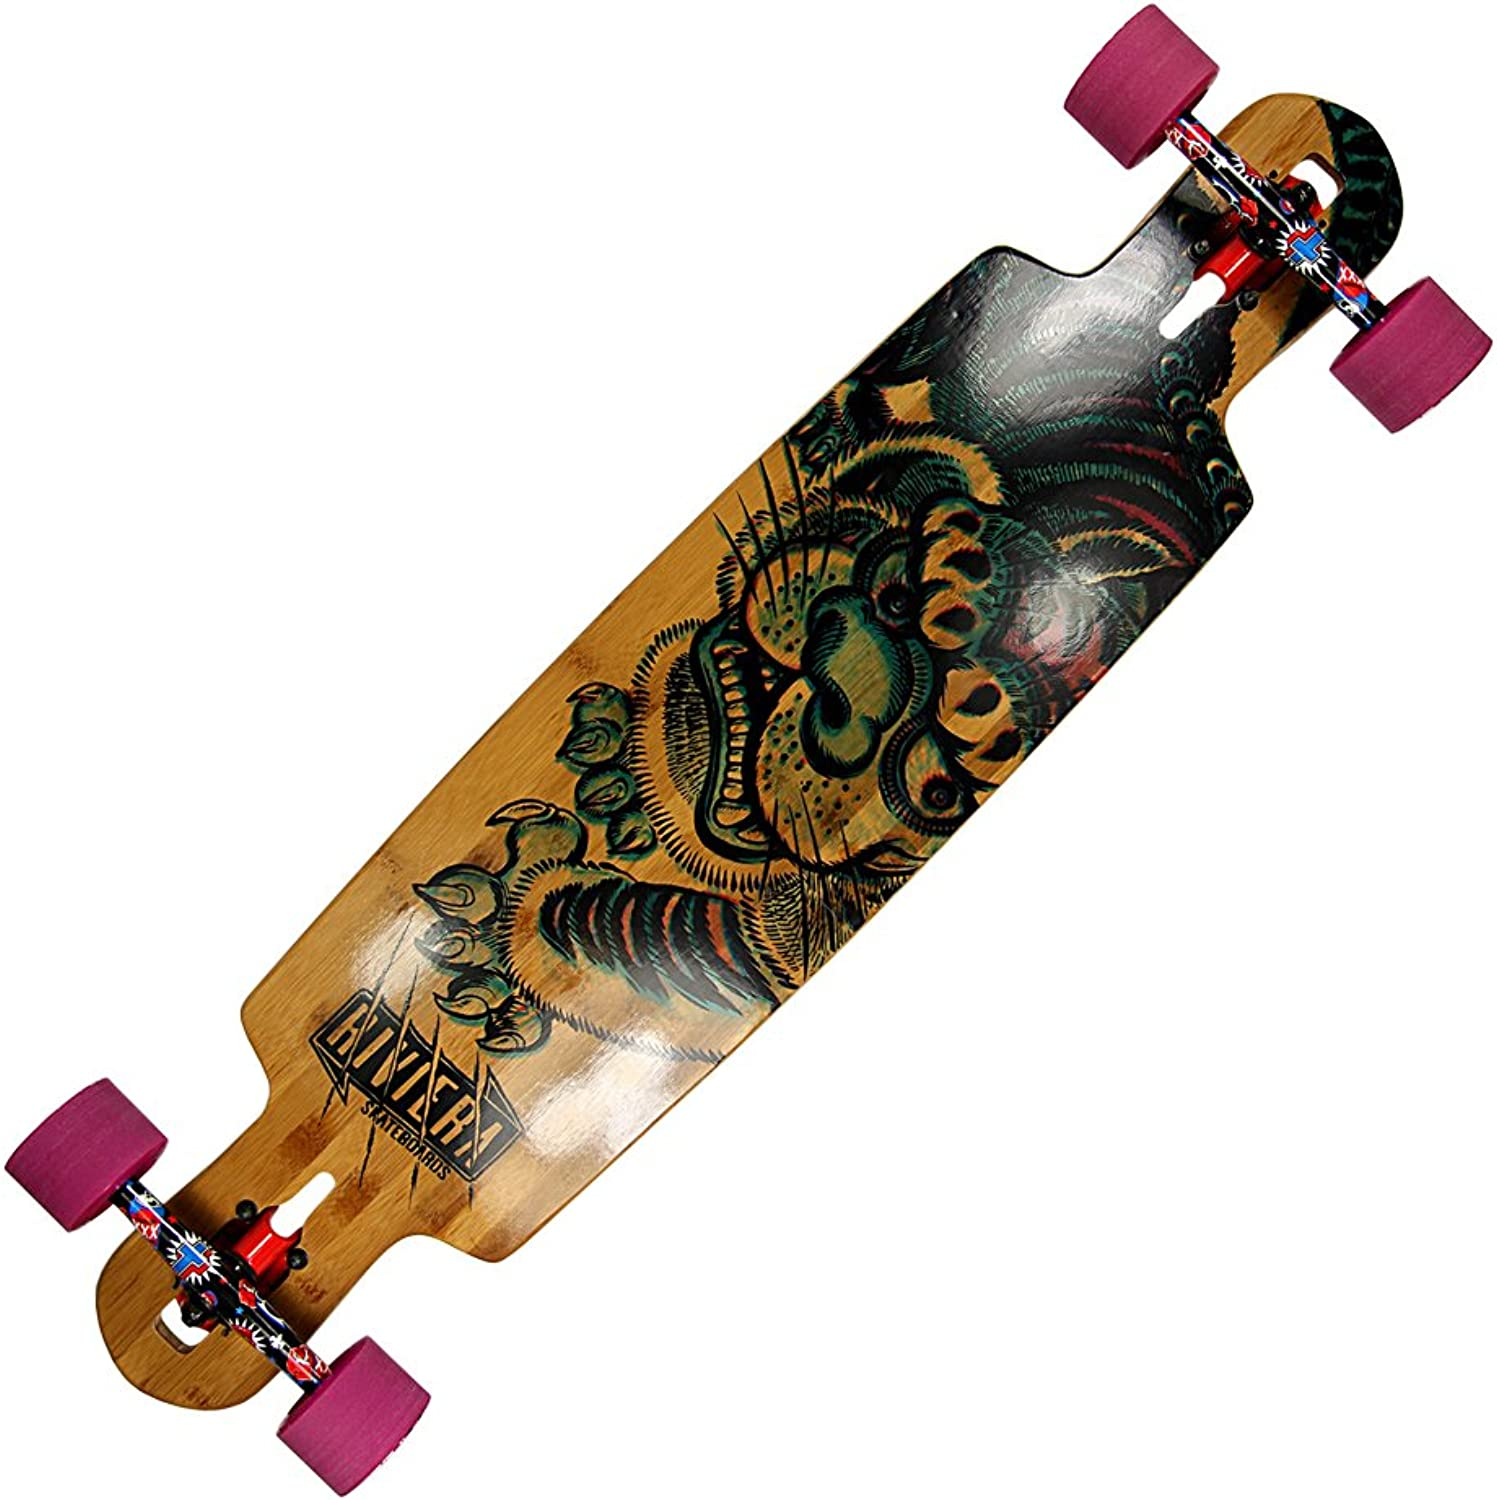 Riviera Skateboards Skateboards Skateboards Kung-Fu-Kitty Longboard Drop-Through B00ULI0ZBU  Niedriger Preis 25d814